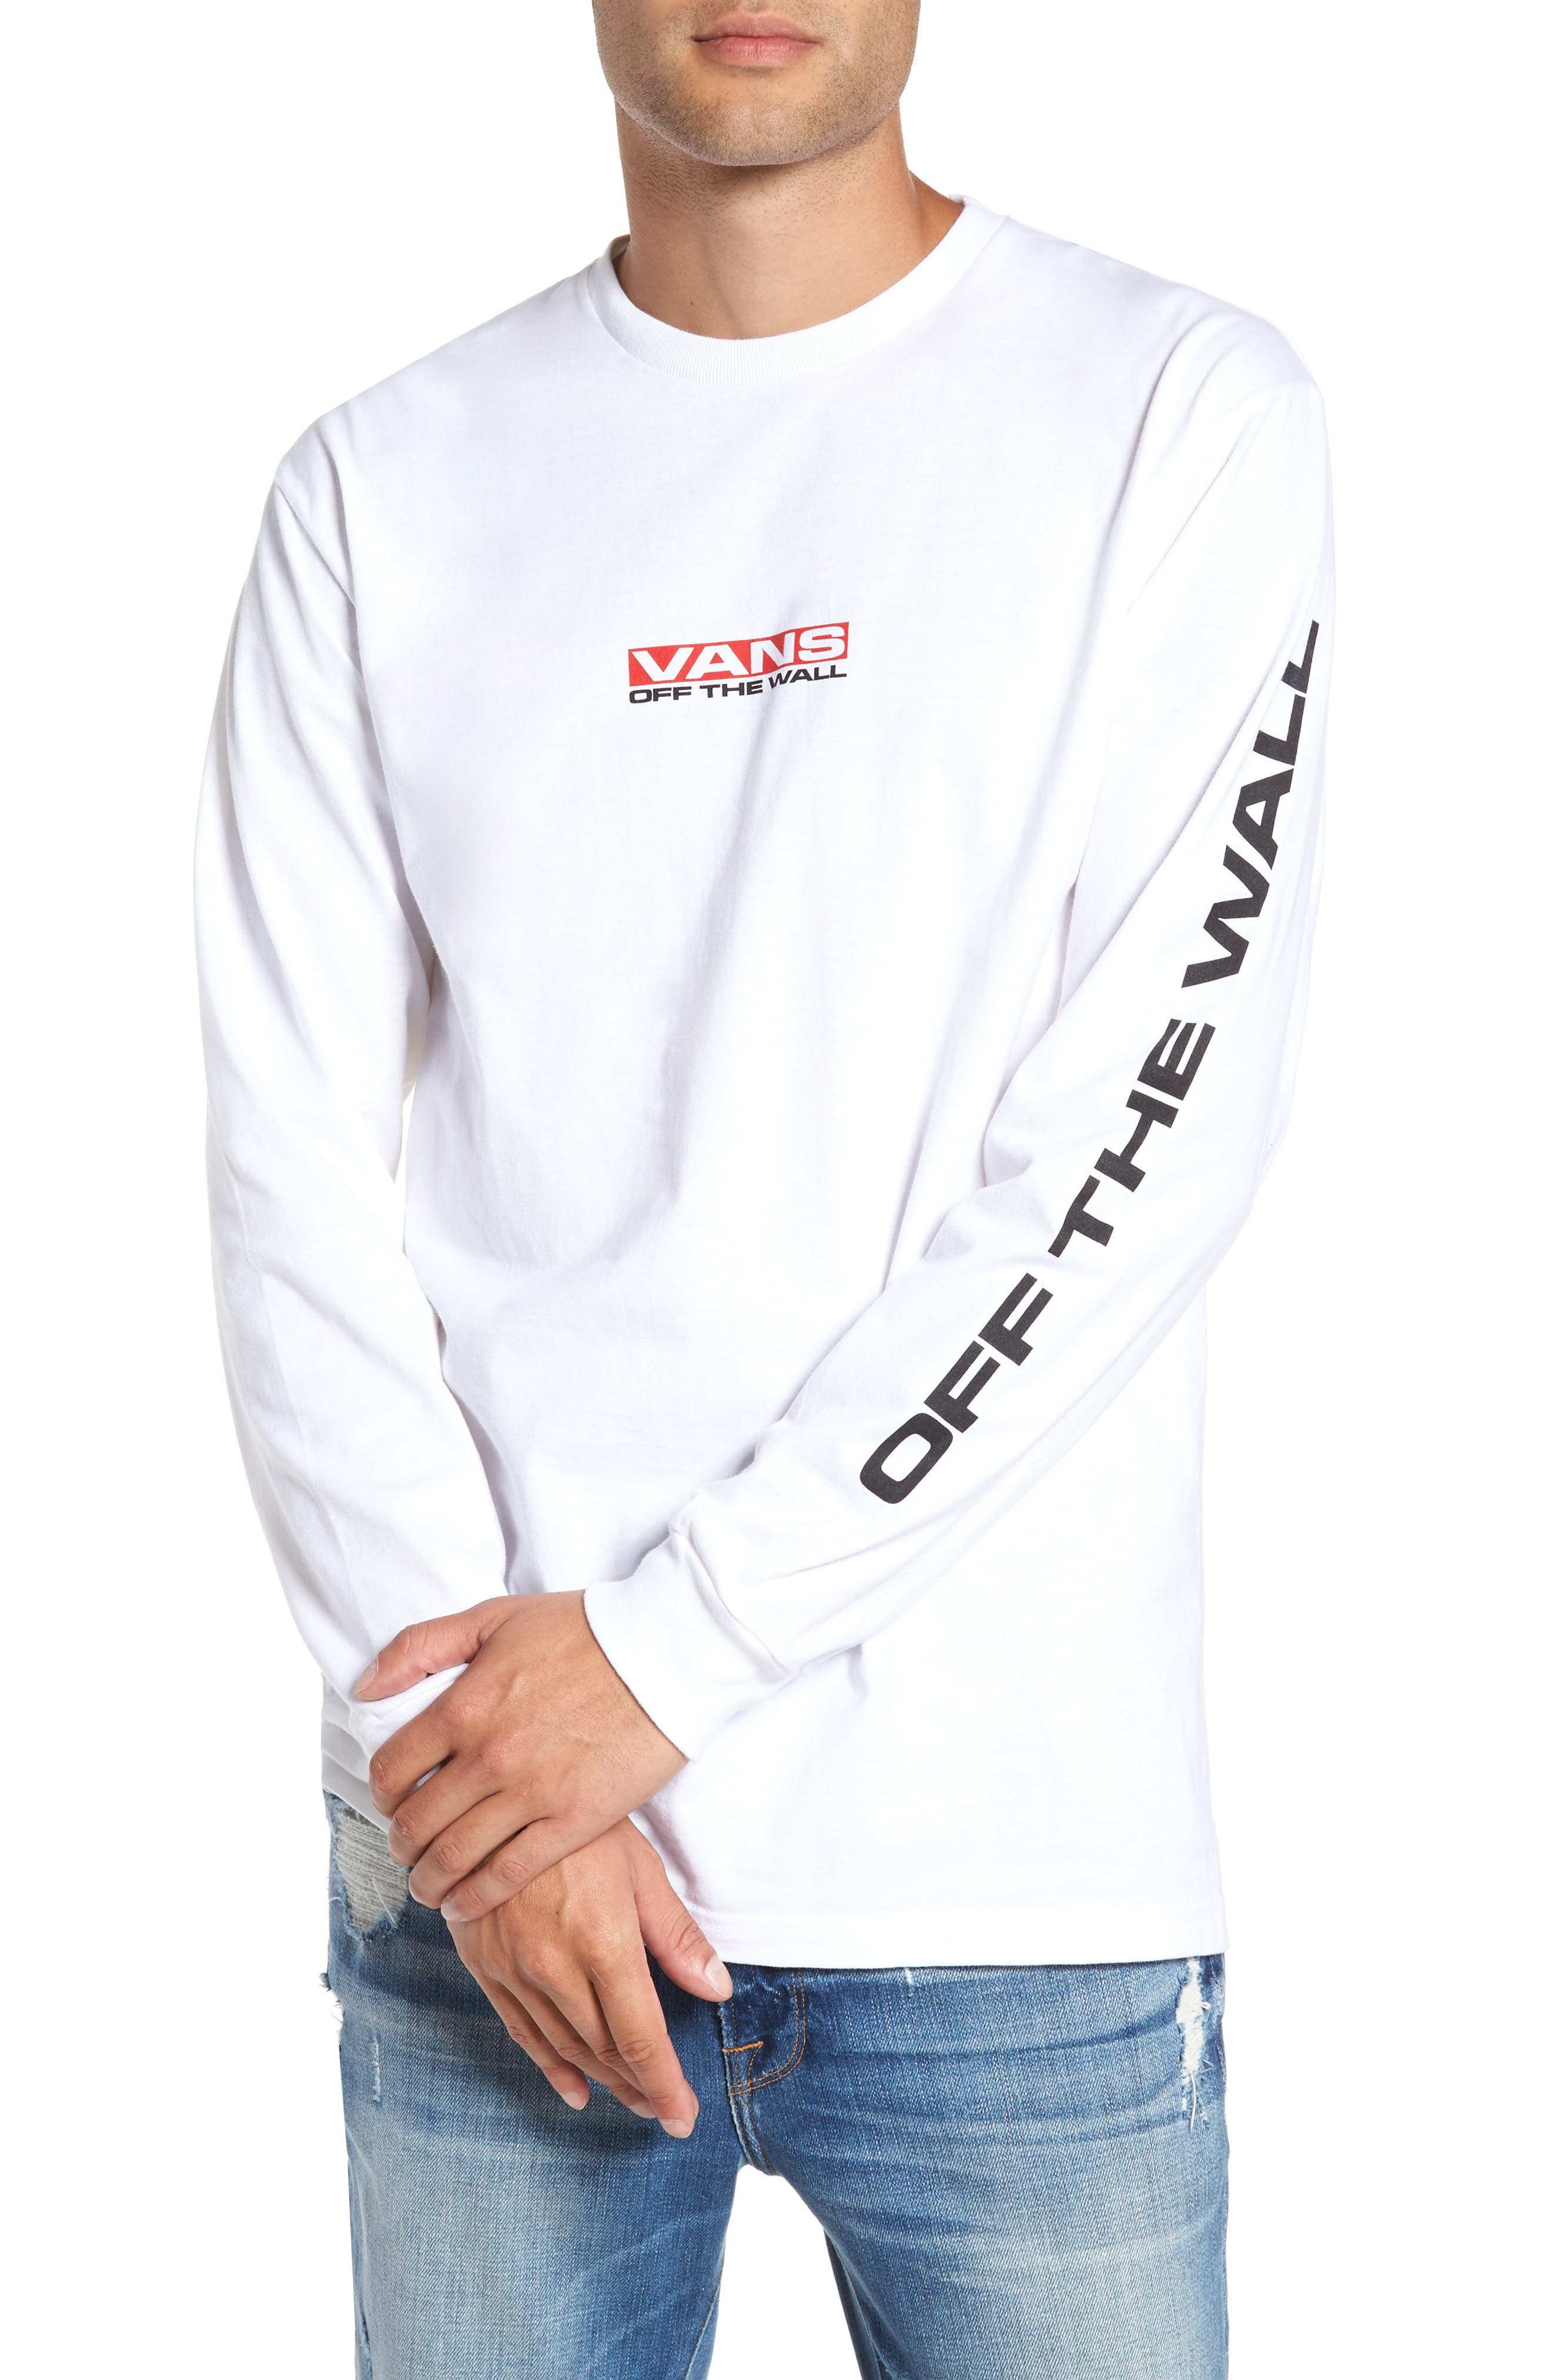 Alternate Image 1 Selected - Vans Side Waze Graphic Long Sleeve T-Shirt